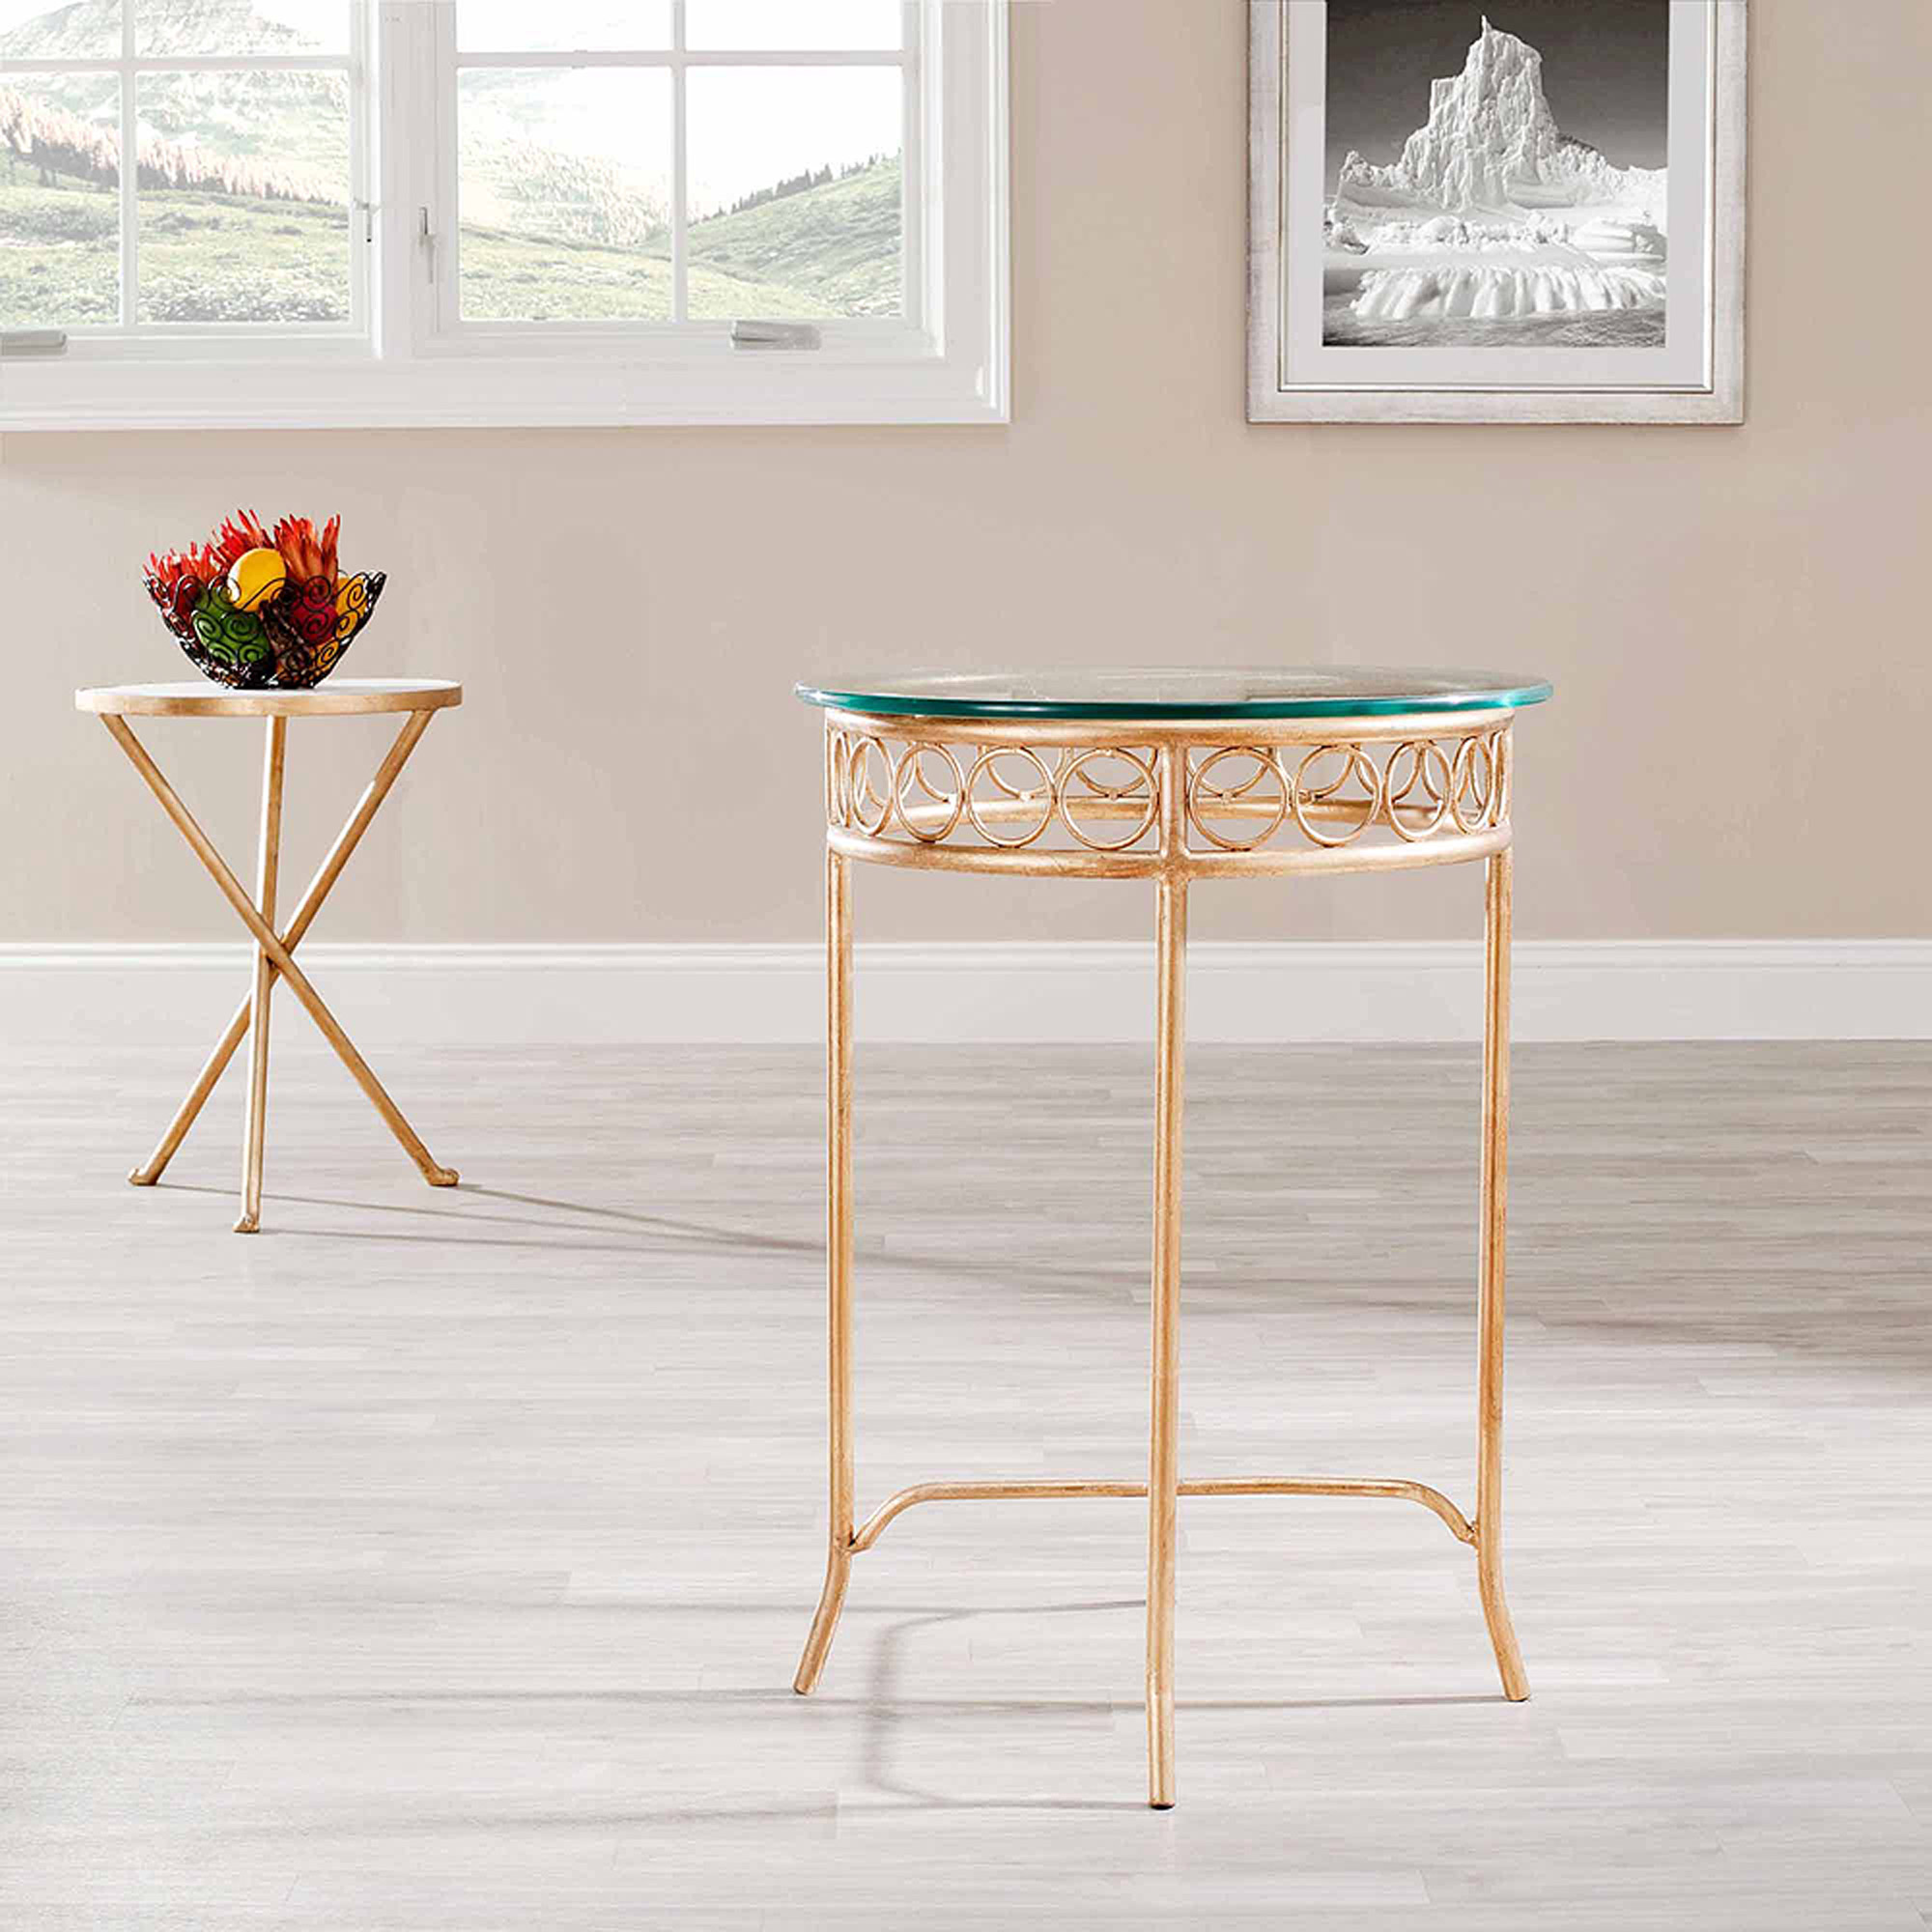 Safavieh Asa Accent Table, Clear Glass Top Gold Legs by Safavieh